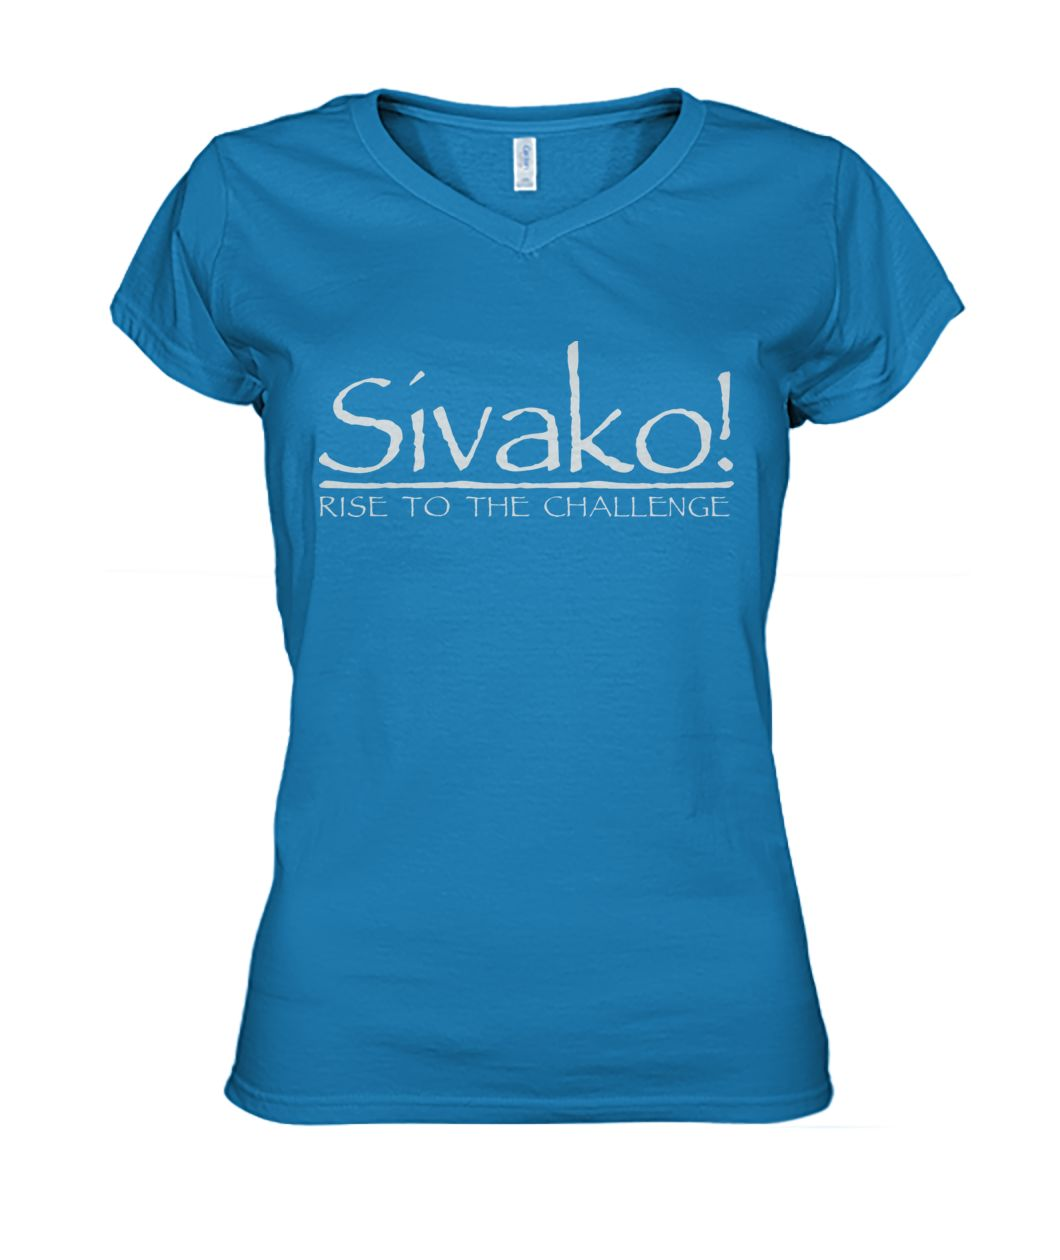 Sivako Women's V-Neck